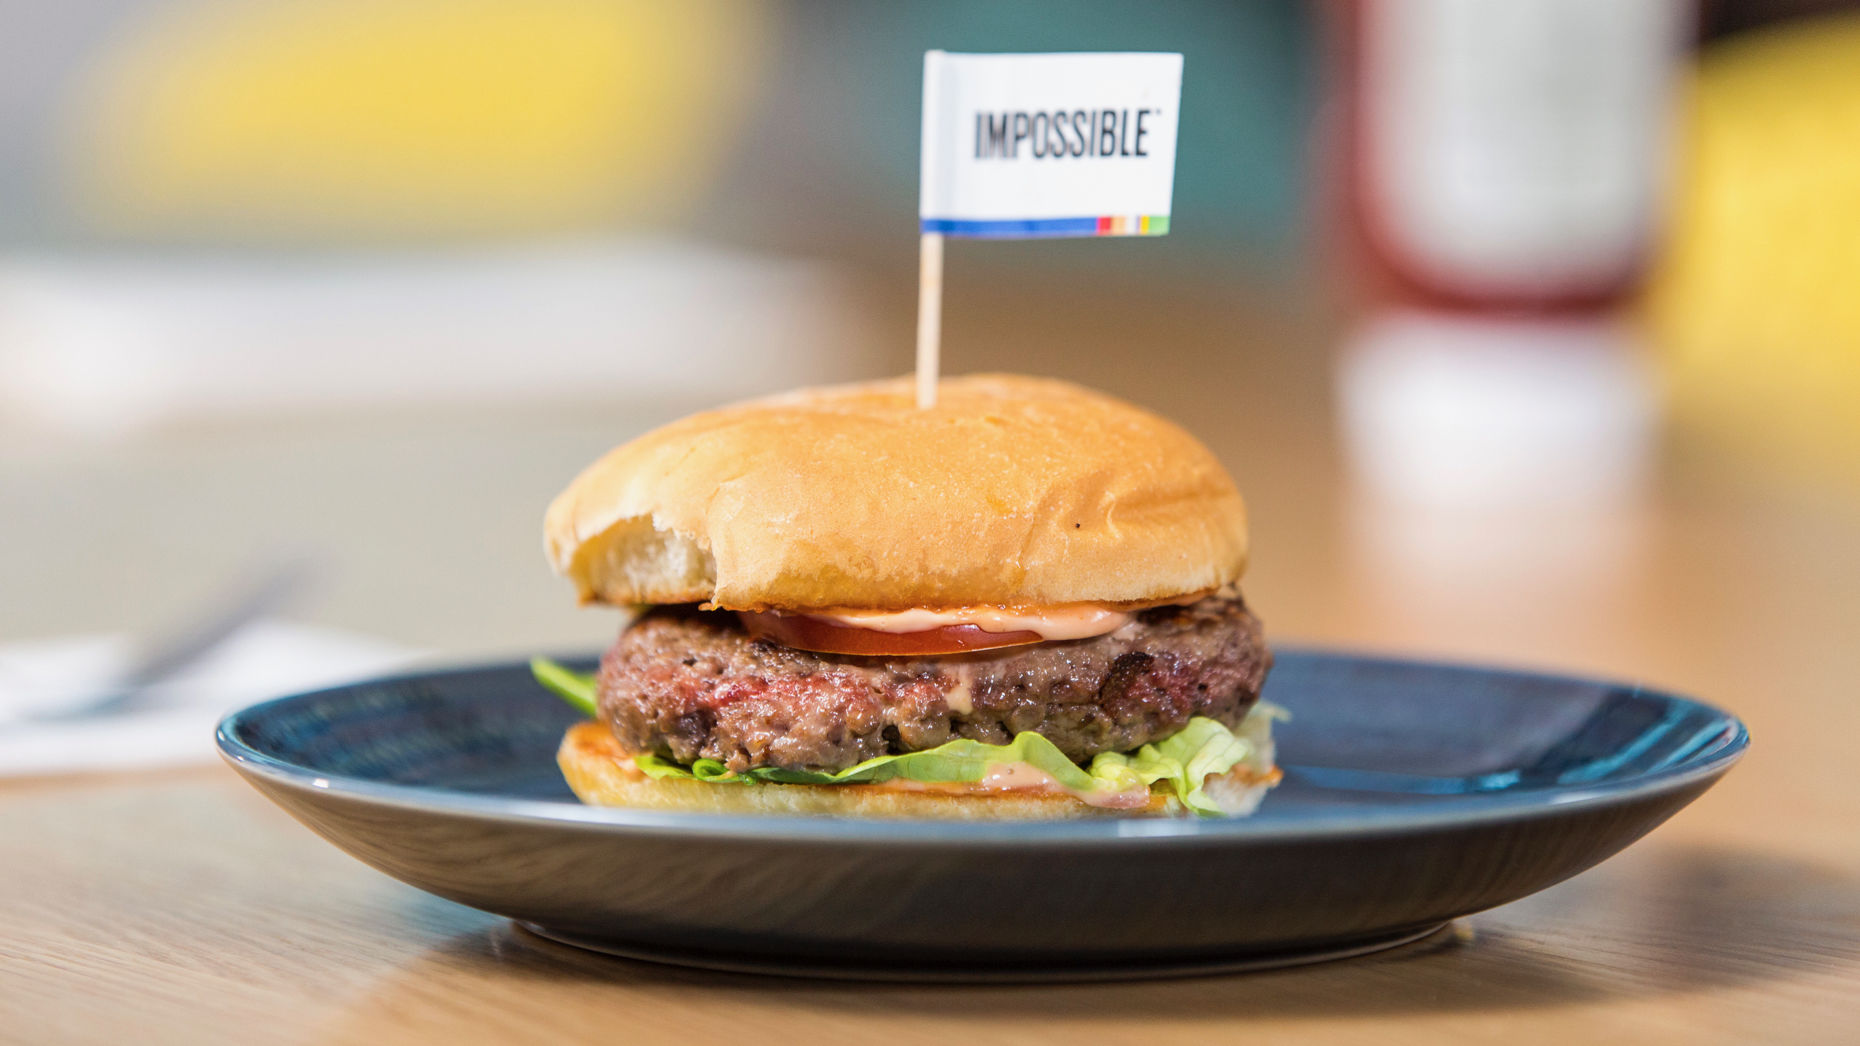 A plant-based burger from Impossible Foods. Photo by Impossible Foods